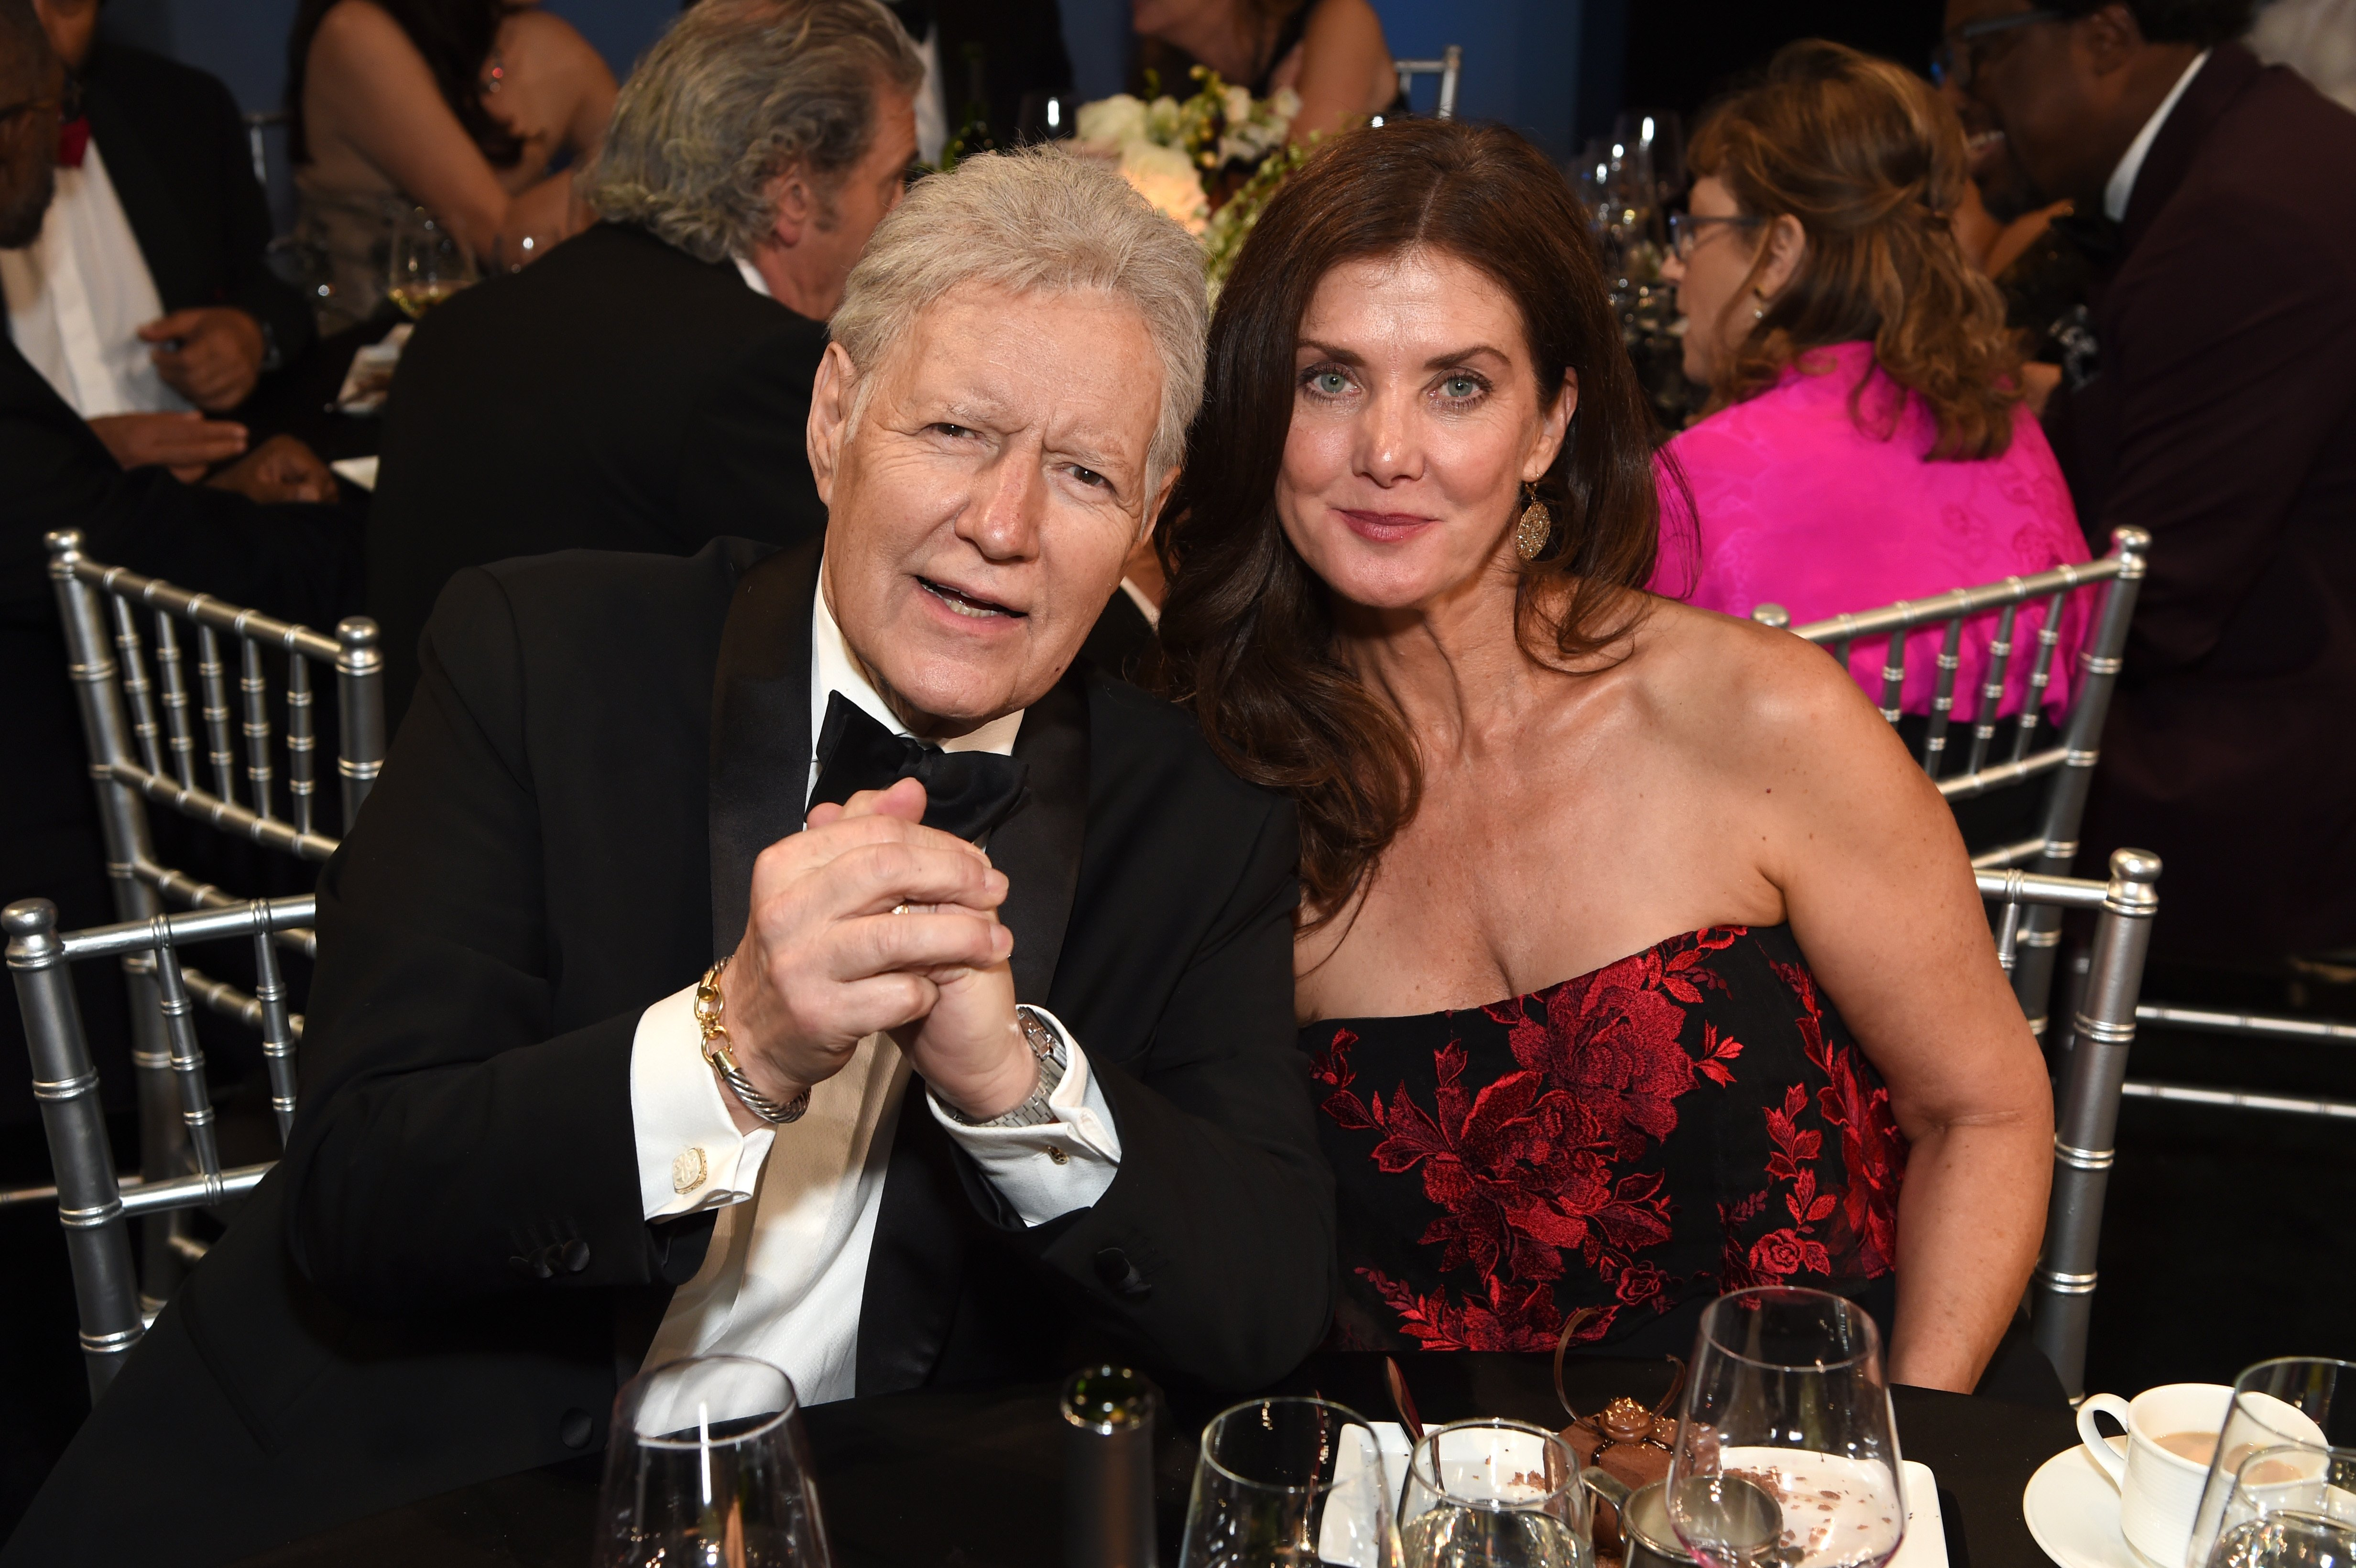 Alex Trebek and Jean Currivan Trebek attend the 47th AFI Life Achievement Award honoring Denzel Washington on June 06, 2019, in Hollywood, California. | Source: Getty Images.